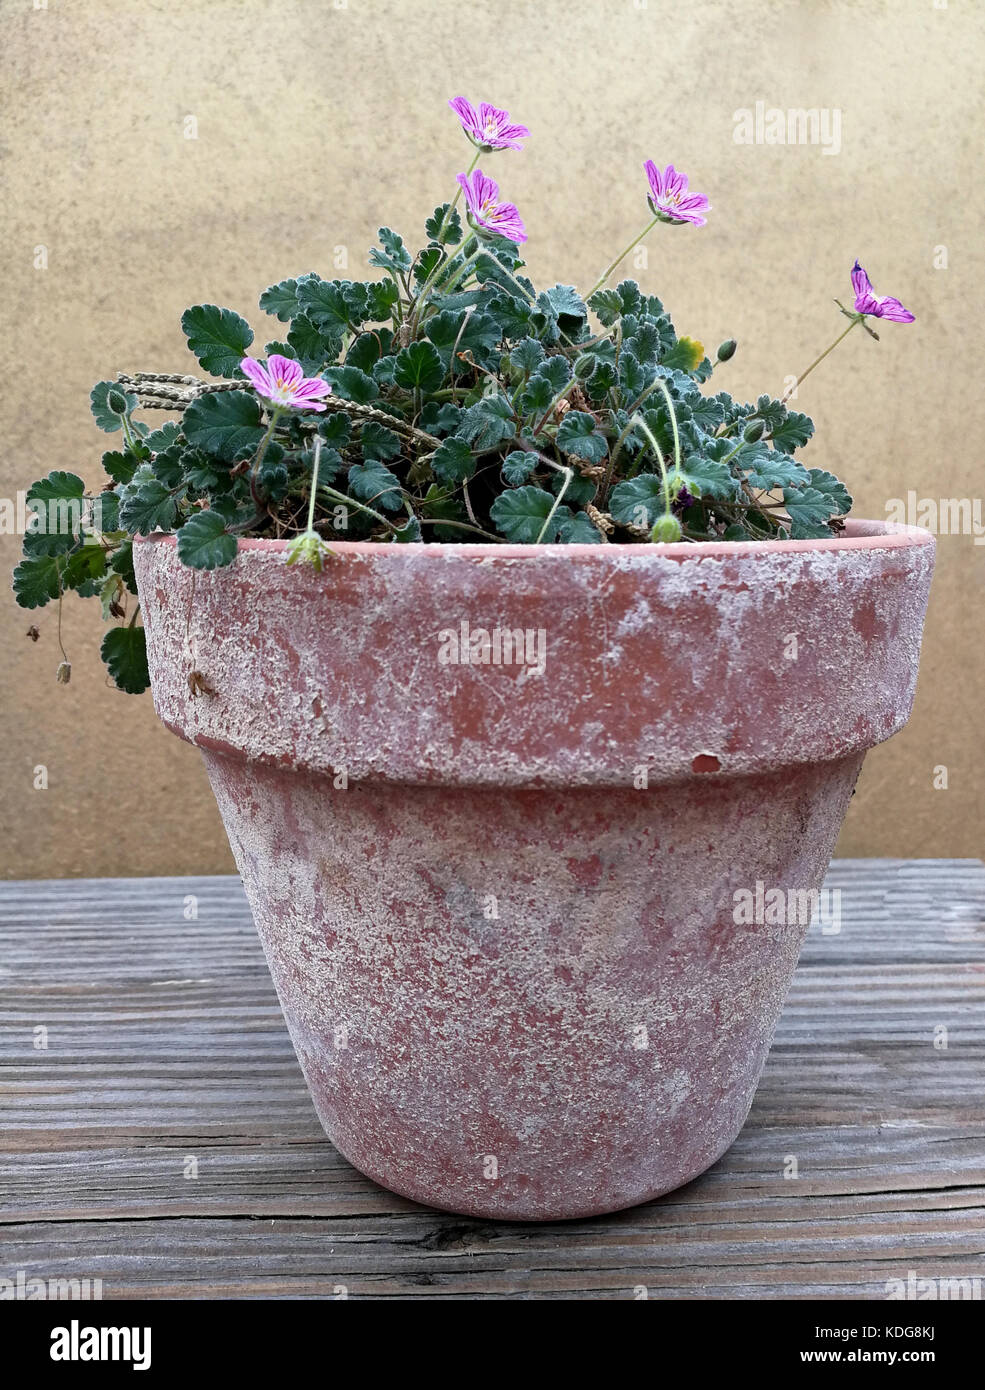 Old Clay Pot With Small Pink Flowers Stock Photo 163241894 Alamy